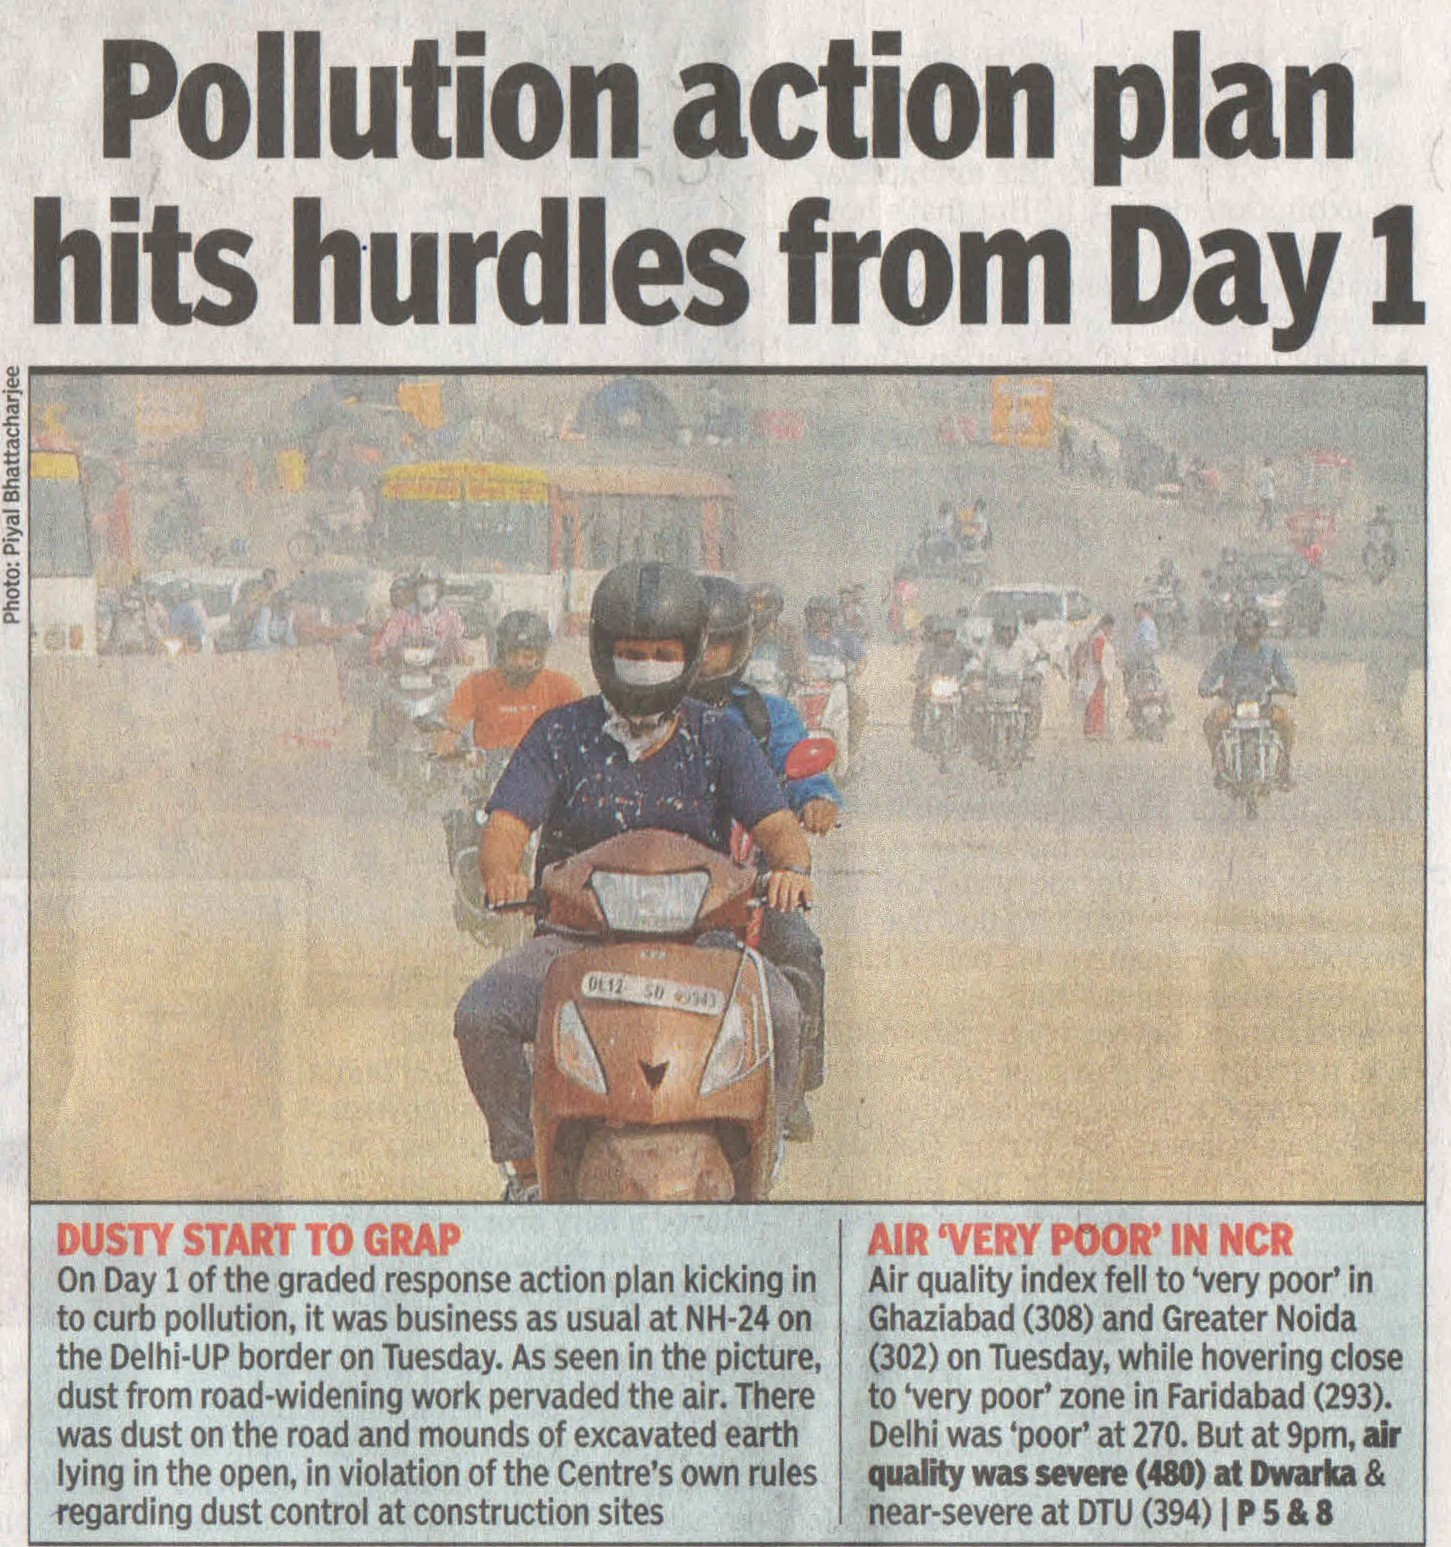 Pollution action plan hits hurdles from Day 1